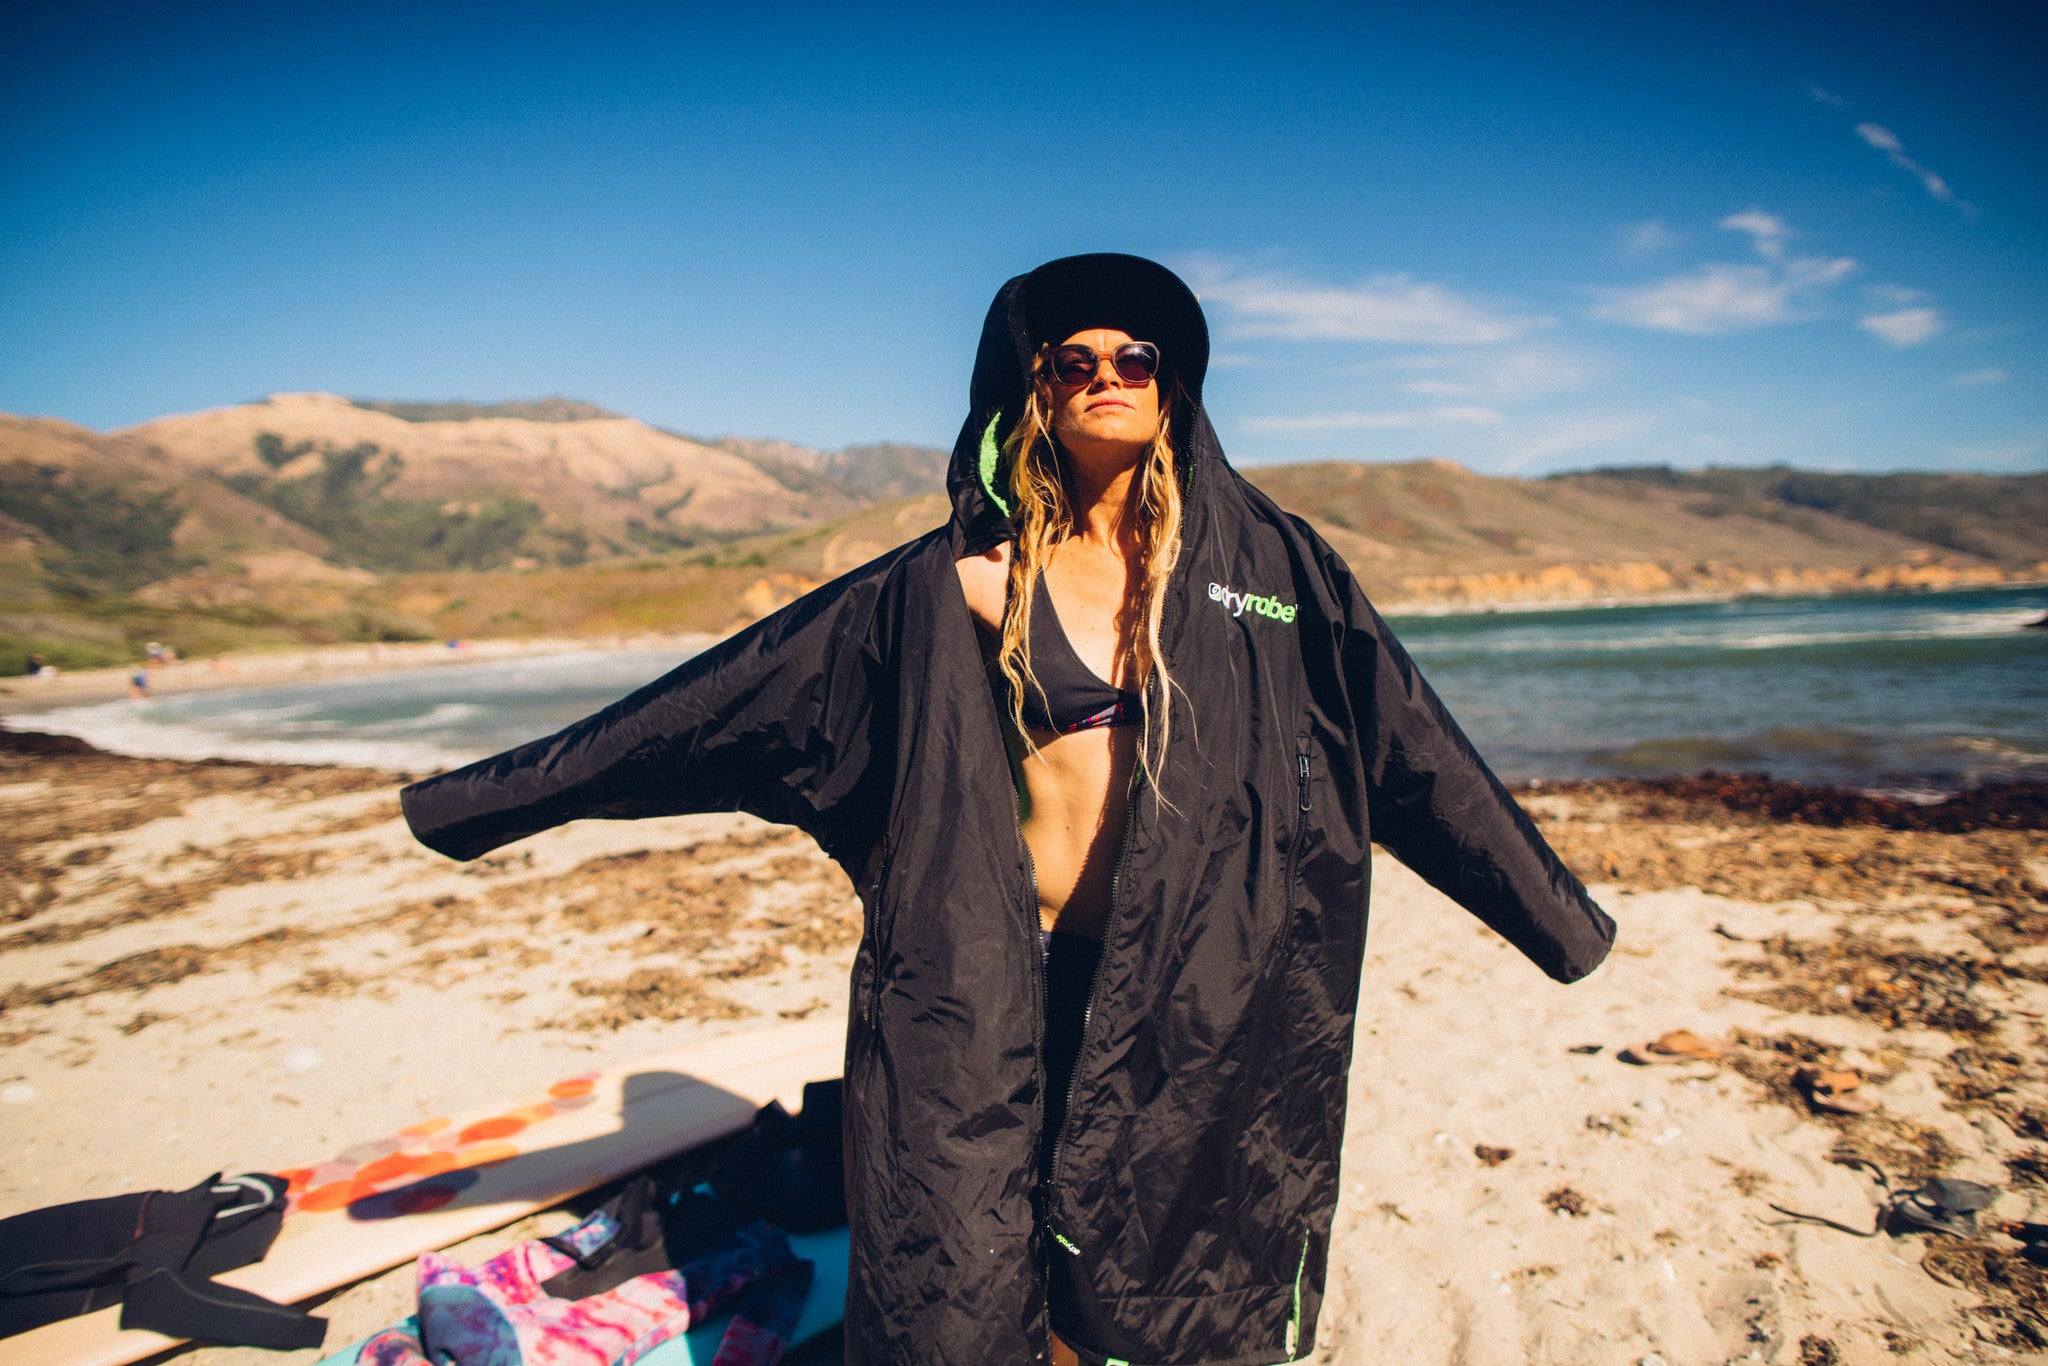 Getting changed easily on the beach with dryrobe